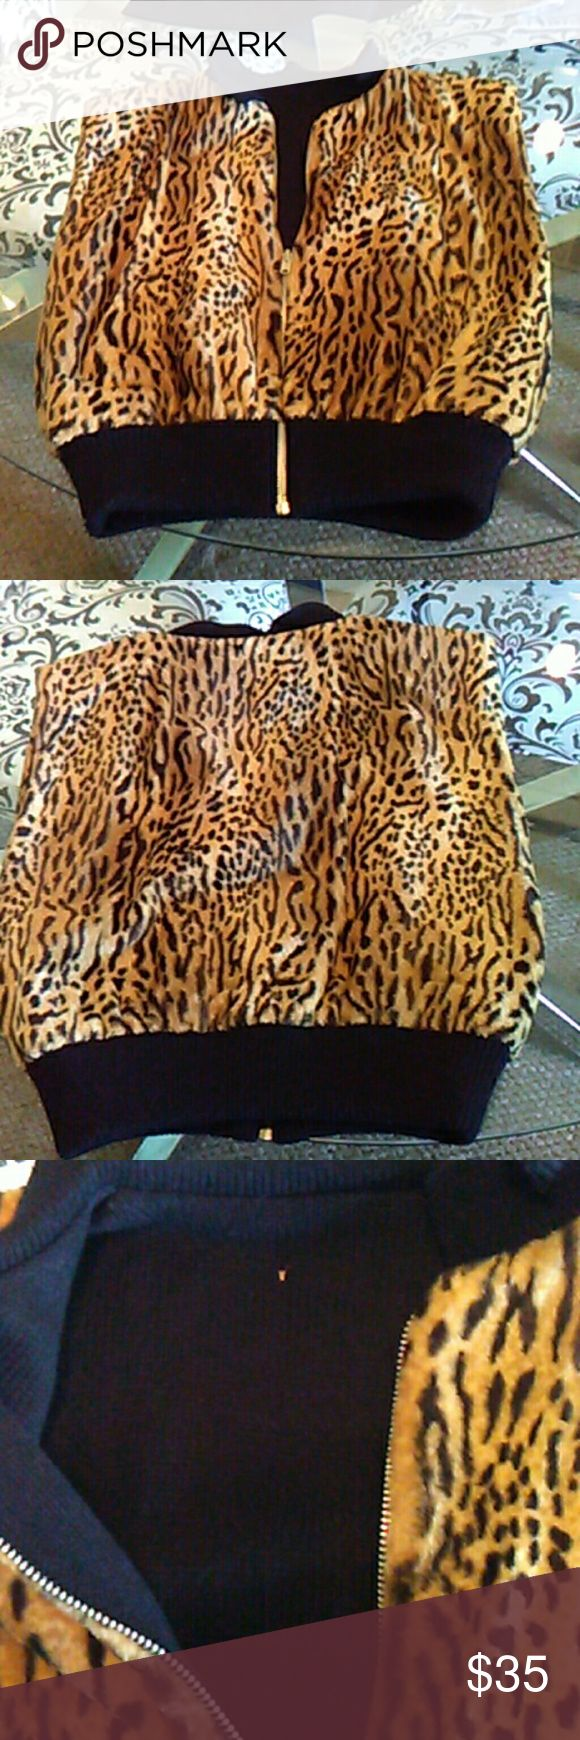 Vintage leopard  sweater vest. So rad ! Beautiful soft sweater vest. Small hole inside, on black sweater, not through fur  Easy fix.  Great condition otherwise. It is reversible, if not for hole which I can't sew, I would want $100 for it Really soft and beautiful. Vintage Tops